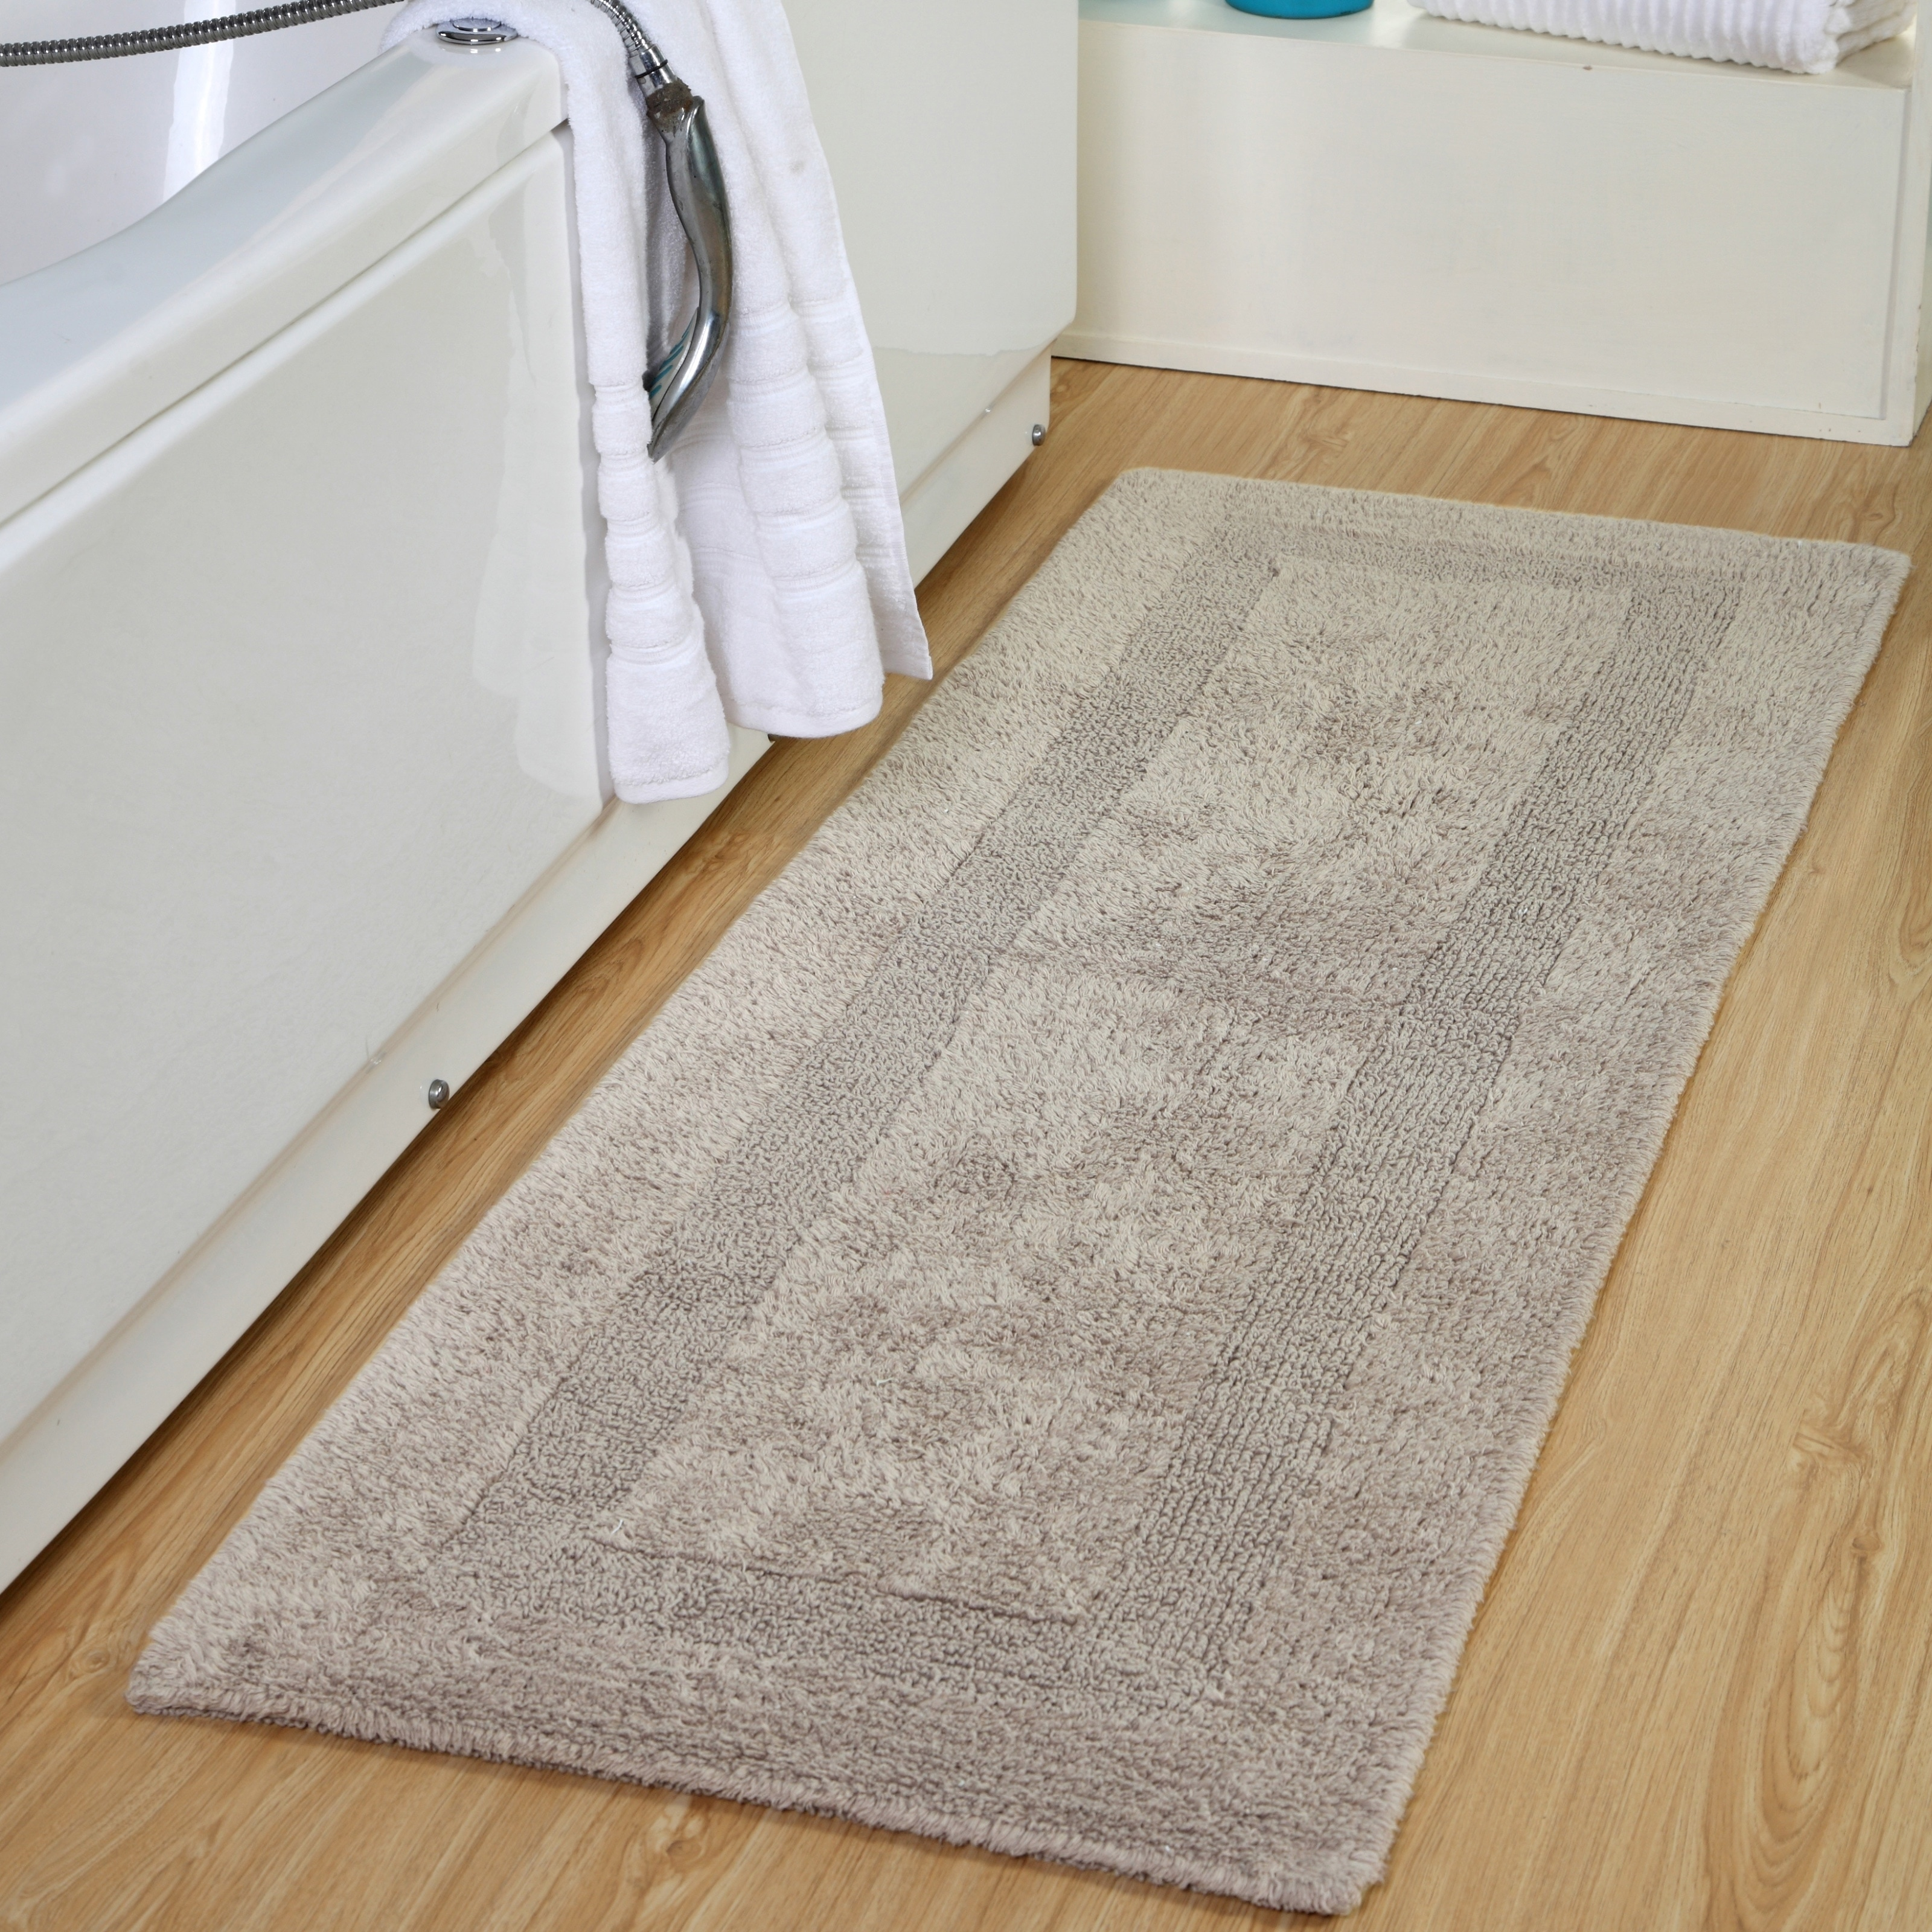 Cotton Luxuriously And Soft Reversible Extra Long Bath Rug 22 X 66 Overstock 19546699